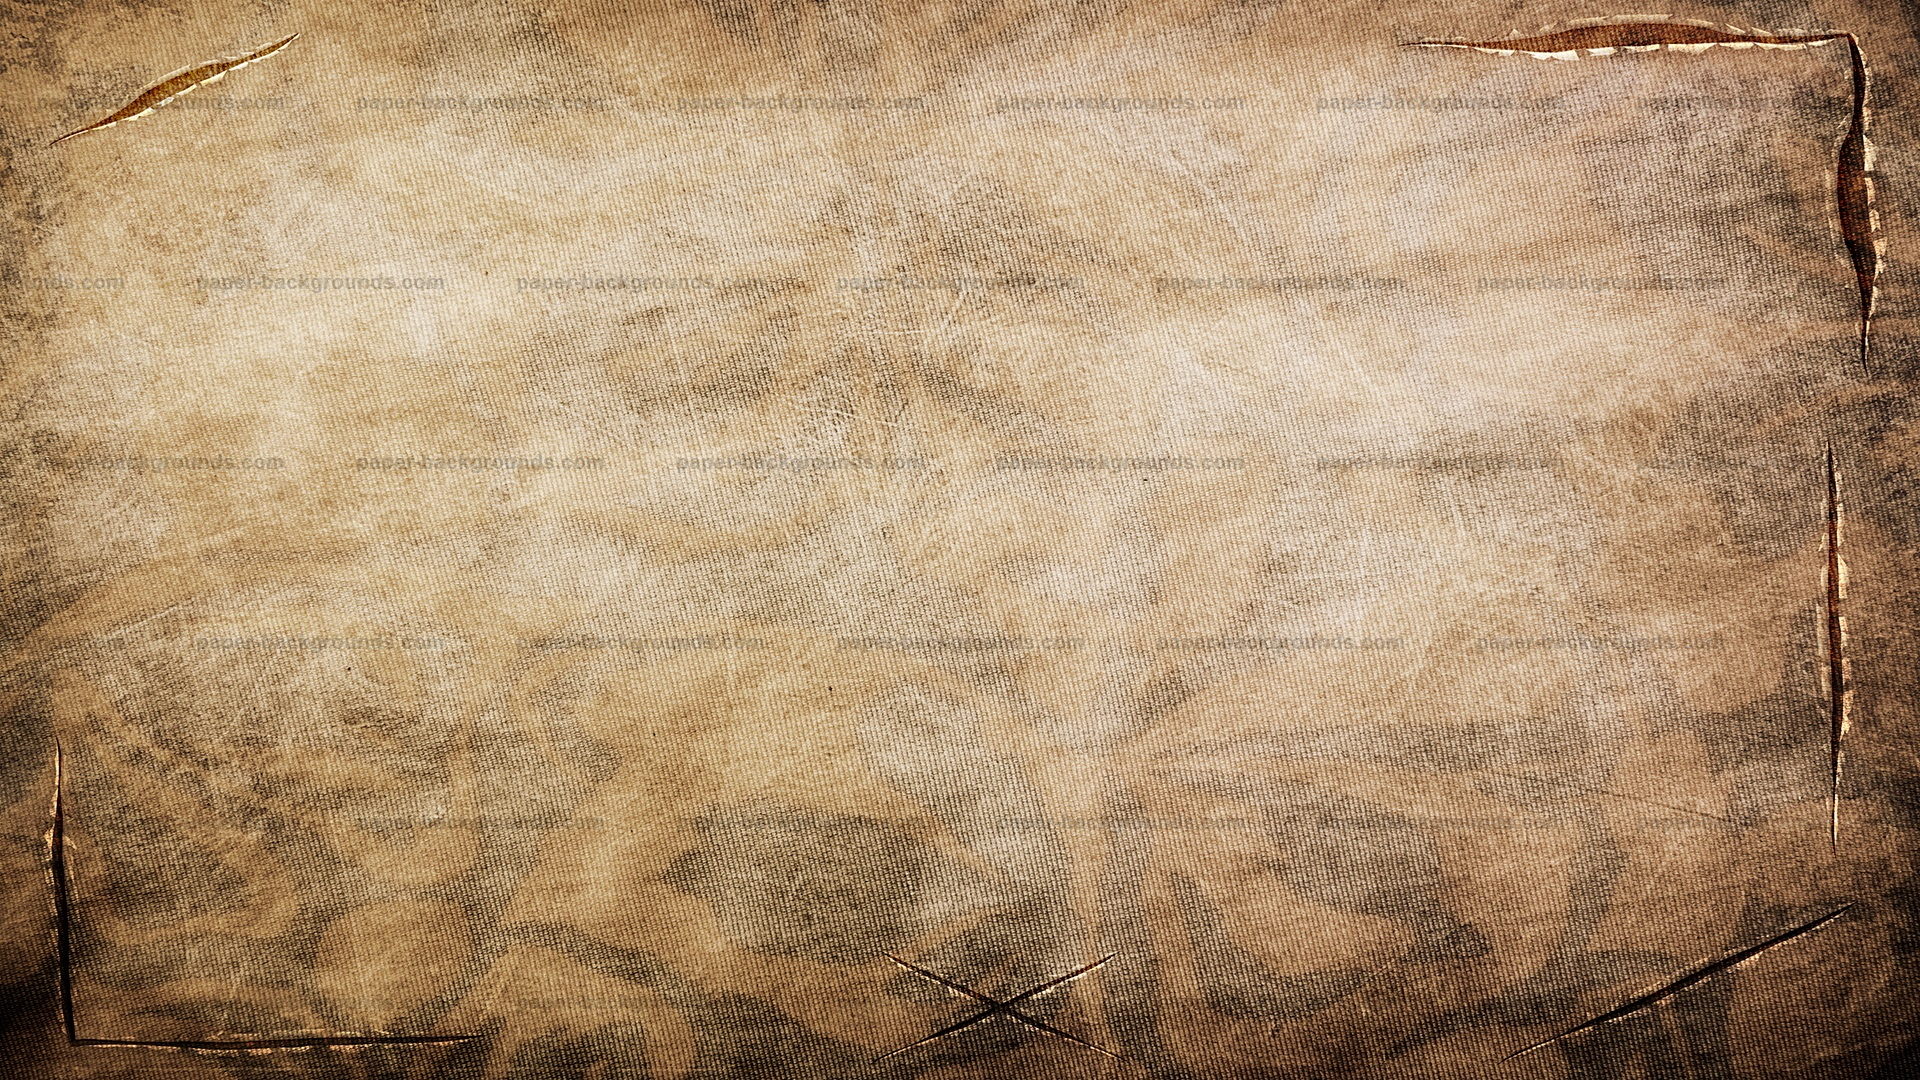 Vintage Brown Fabric Texture With Tears Cuts HD